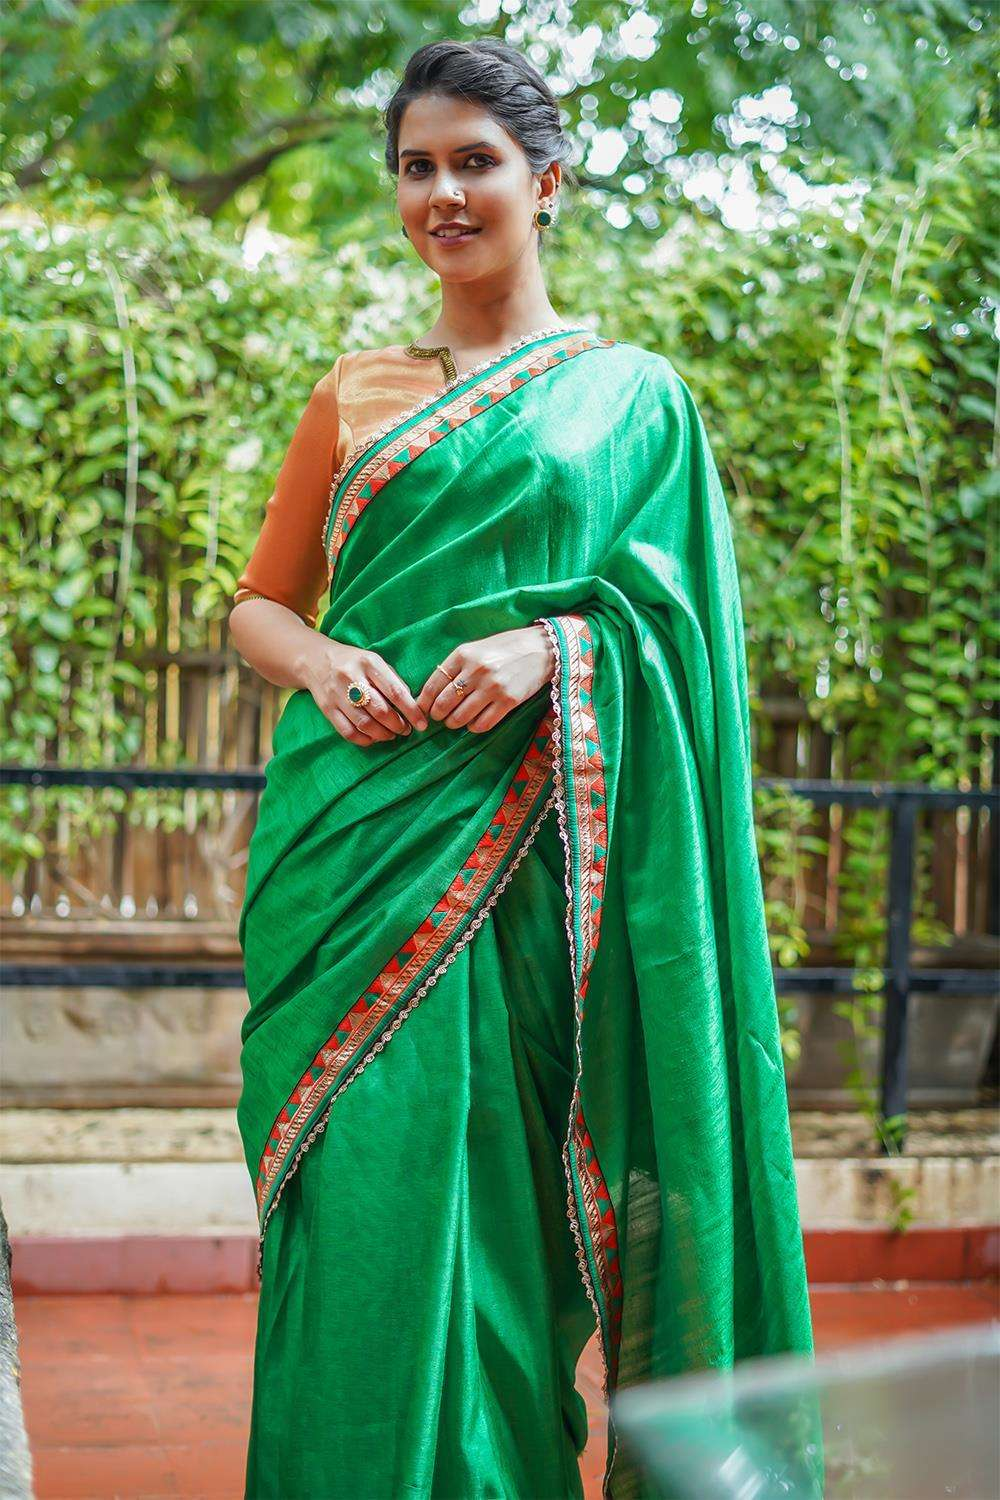 Fern green semi matka silk saree with orange-green geometric border - House of Blouse